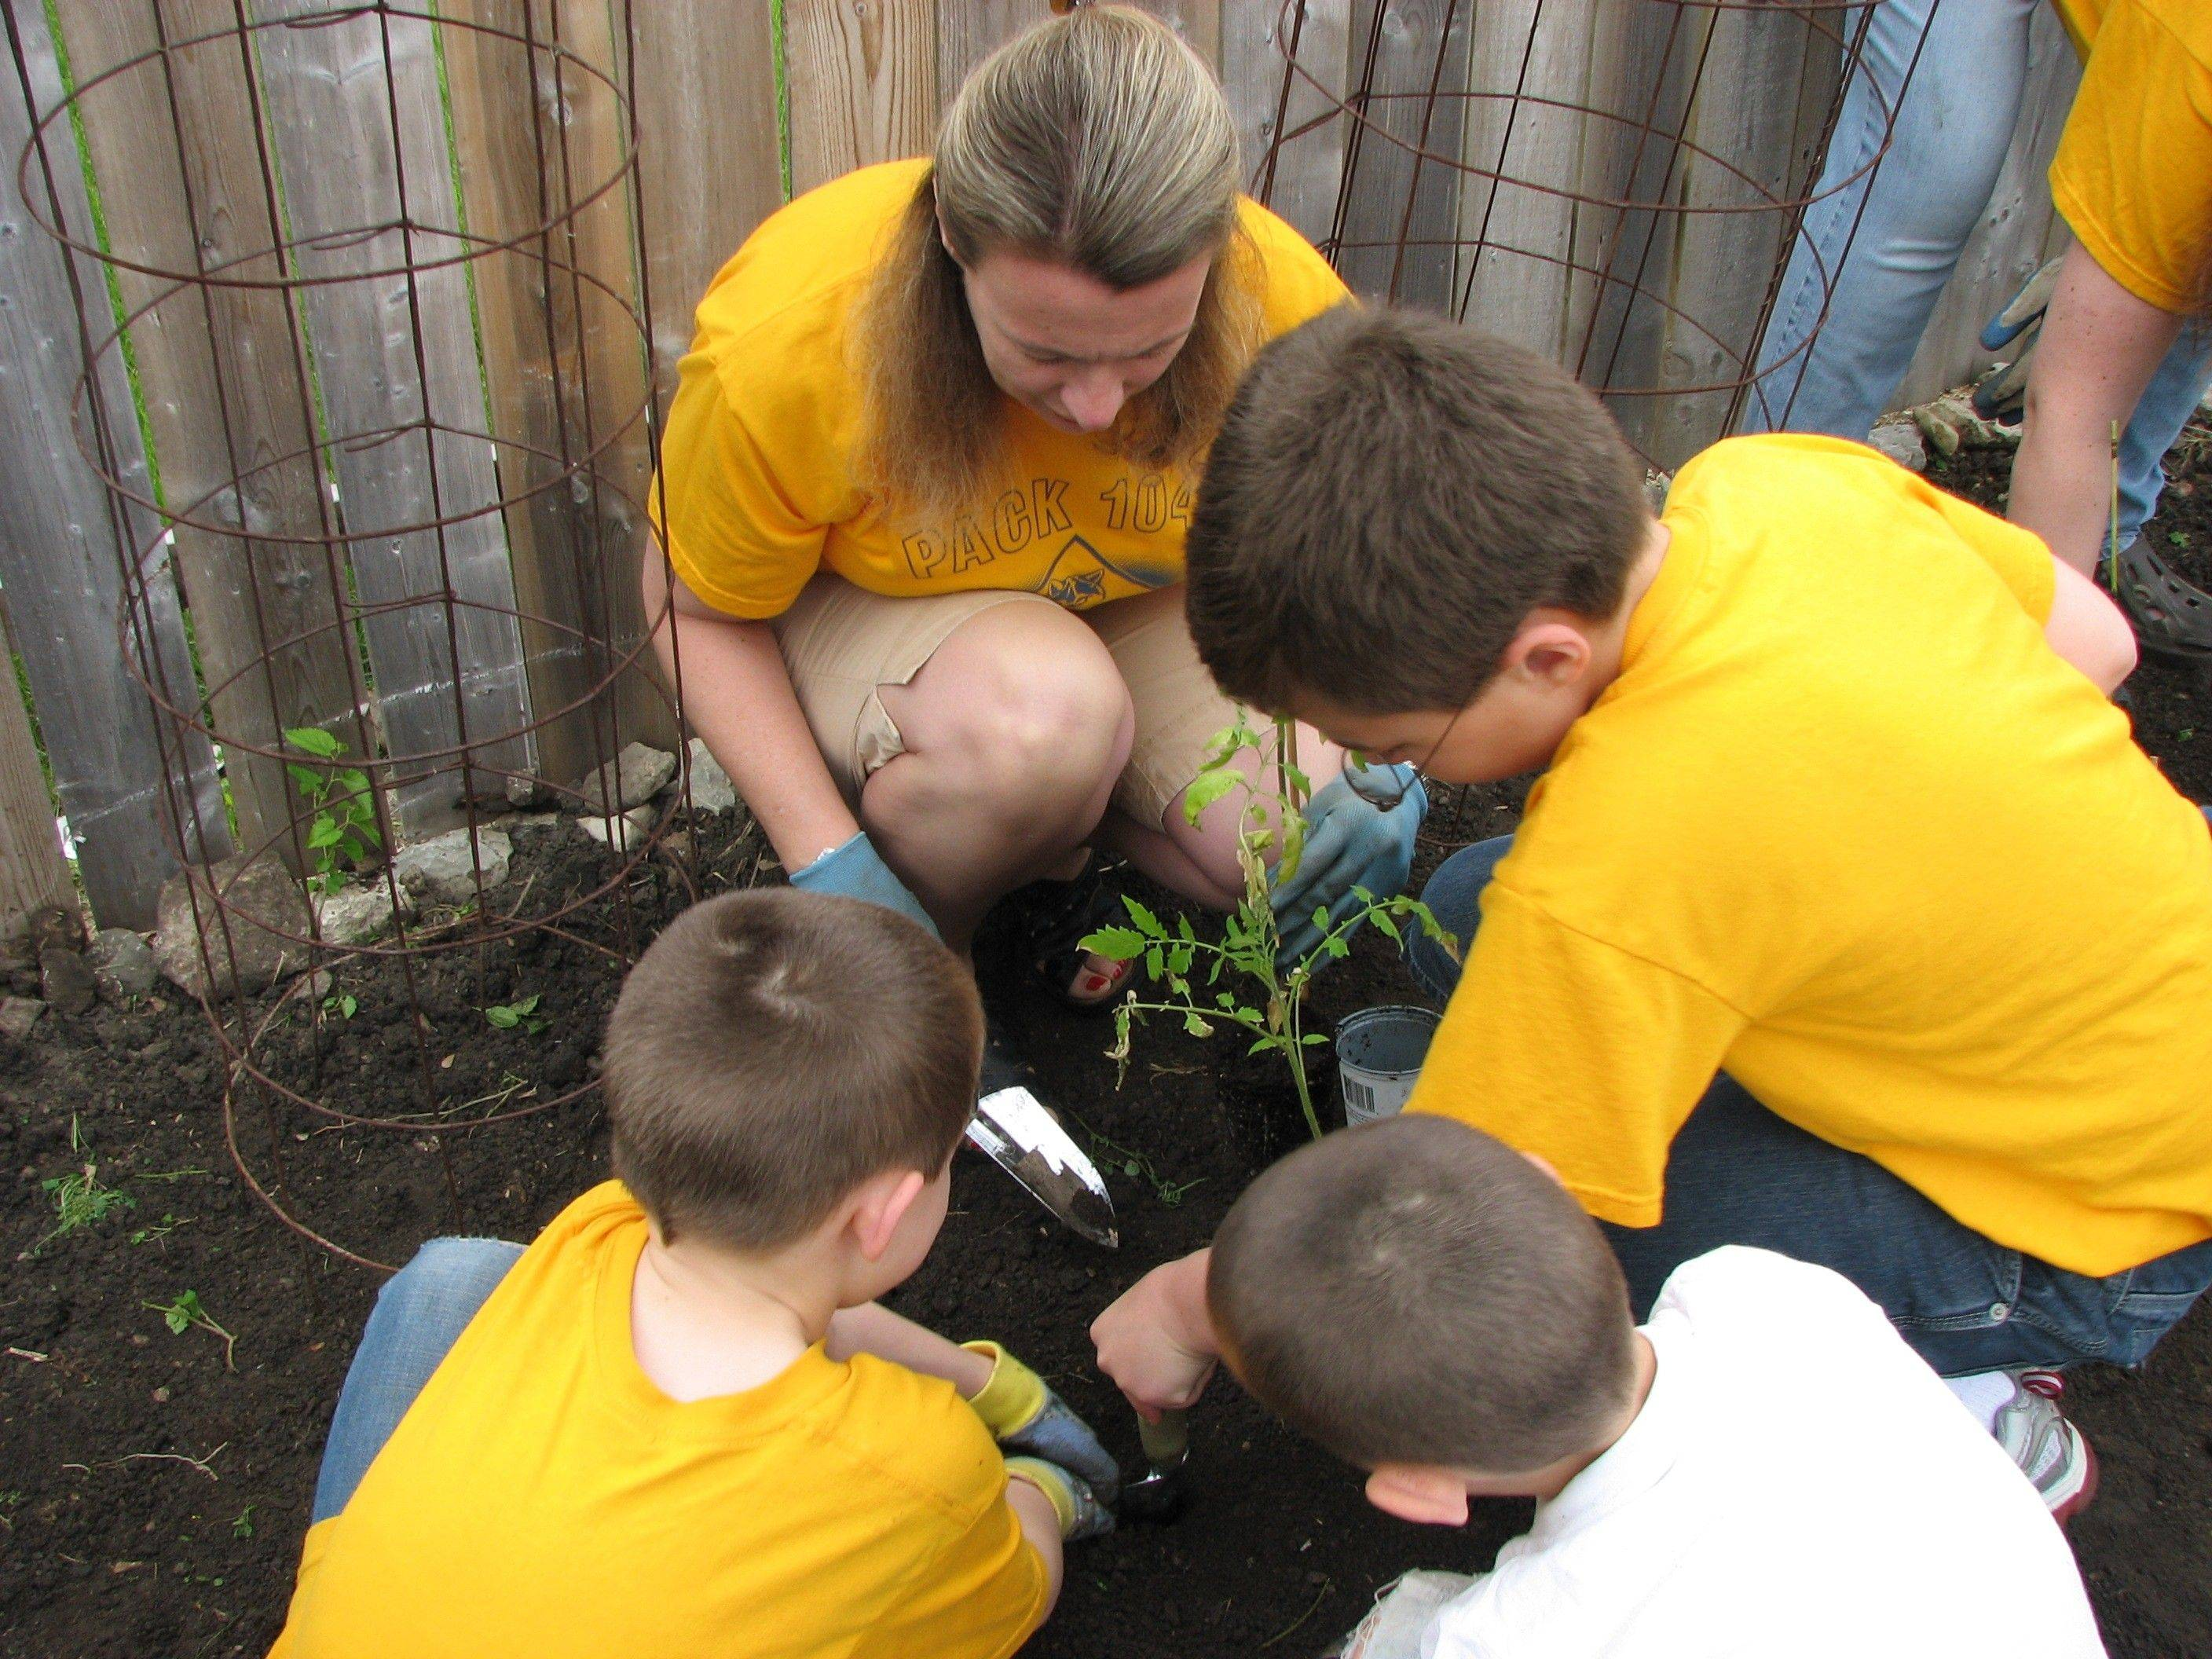 Members of Cub Scout Pack 1047 in Gilberts plant the crops that will provide more than 1,000 vegetables to families this summer through the Daily Herald's Giving Garden campaign.